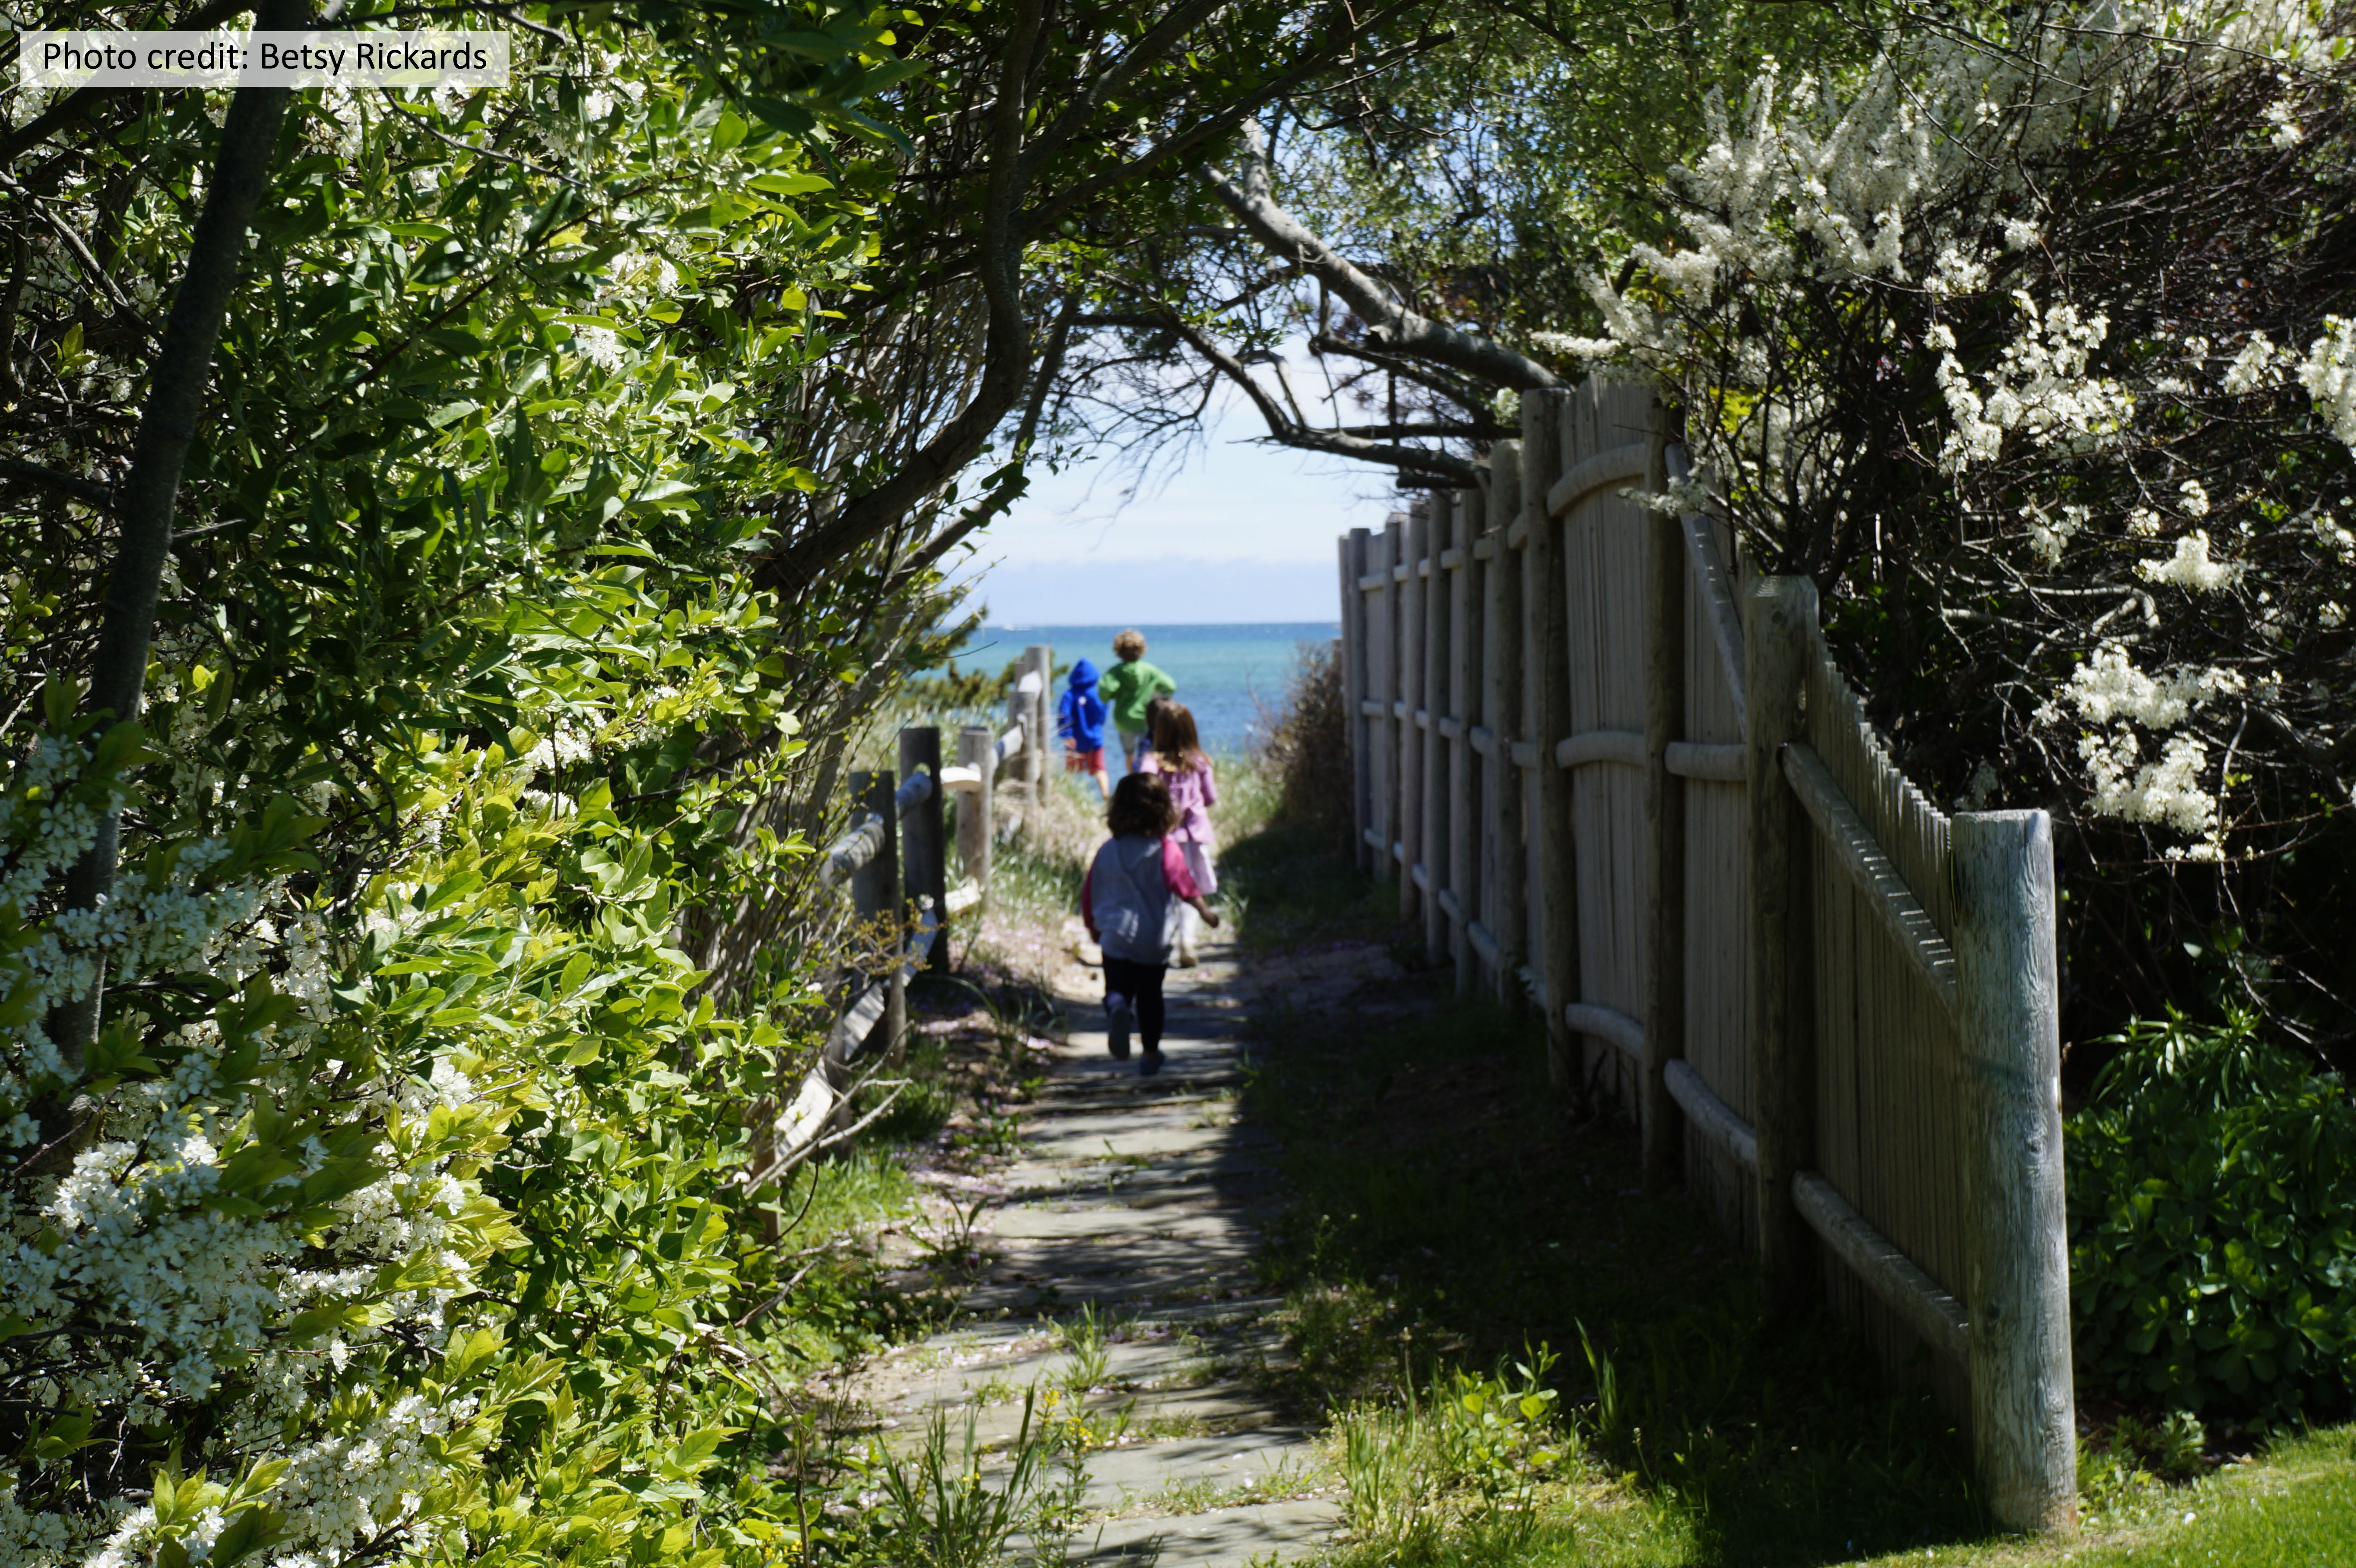 Cape Cod walkway in Massachusetts, fringed by native beach plums